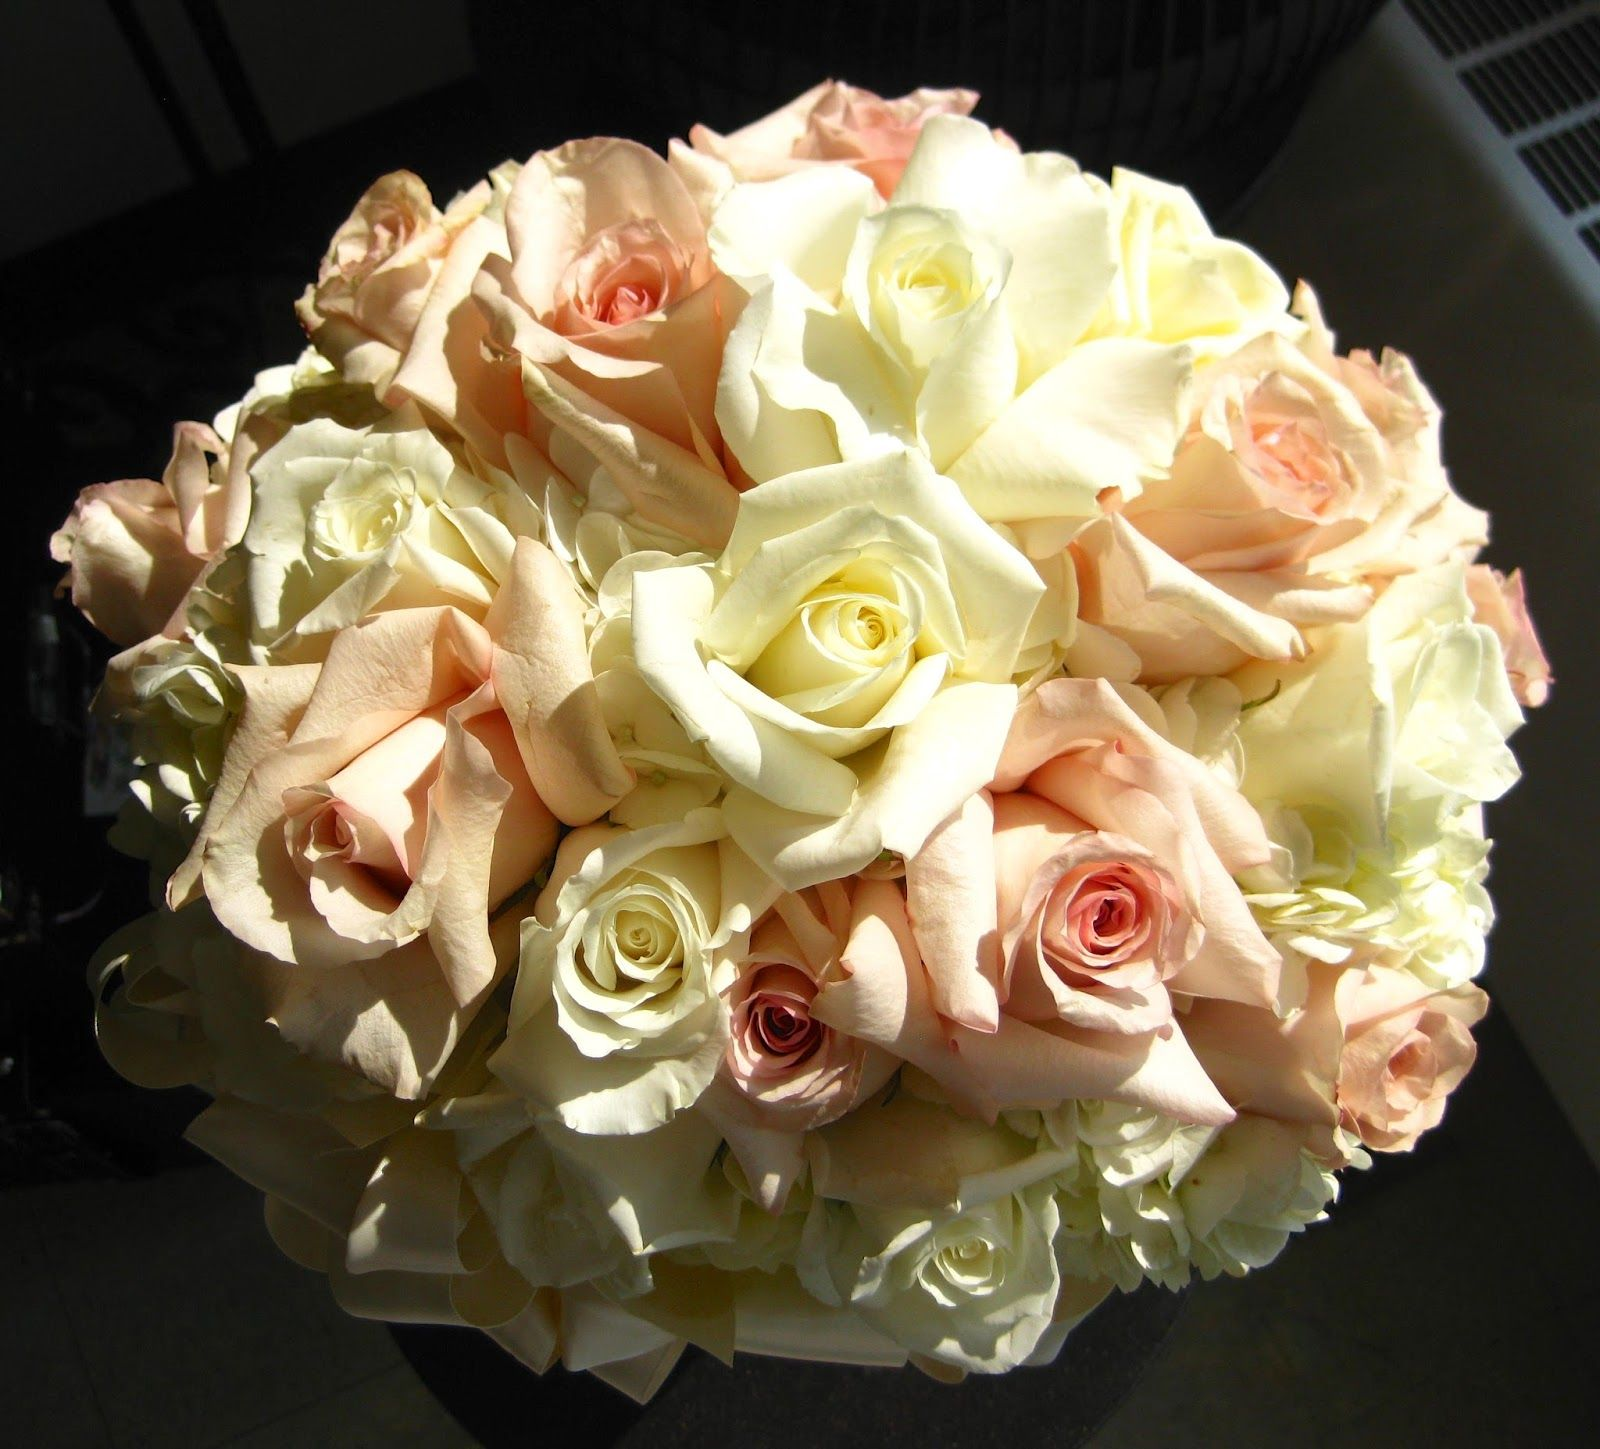 White Hydrangea Quicksand And Eskimo Roses Rose Flowers Hydrangea